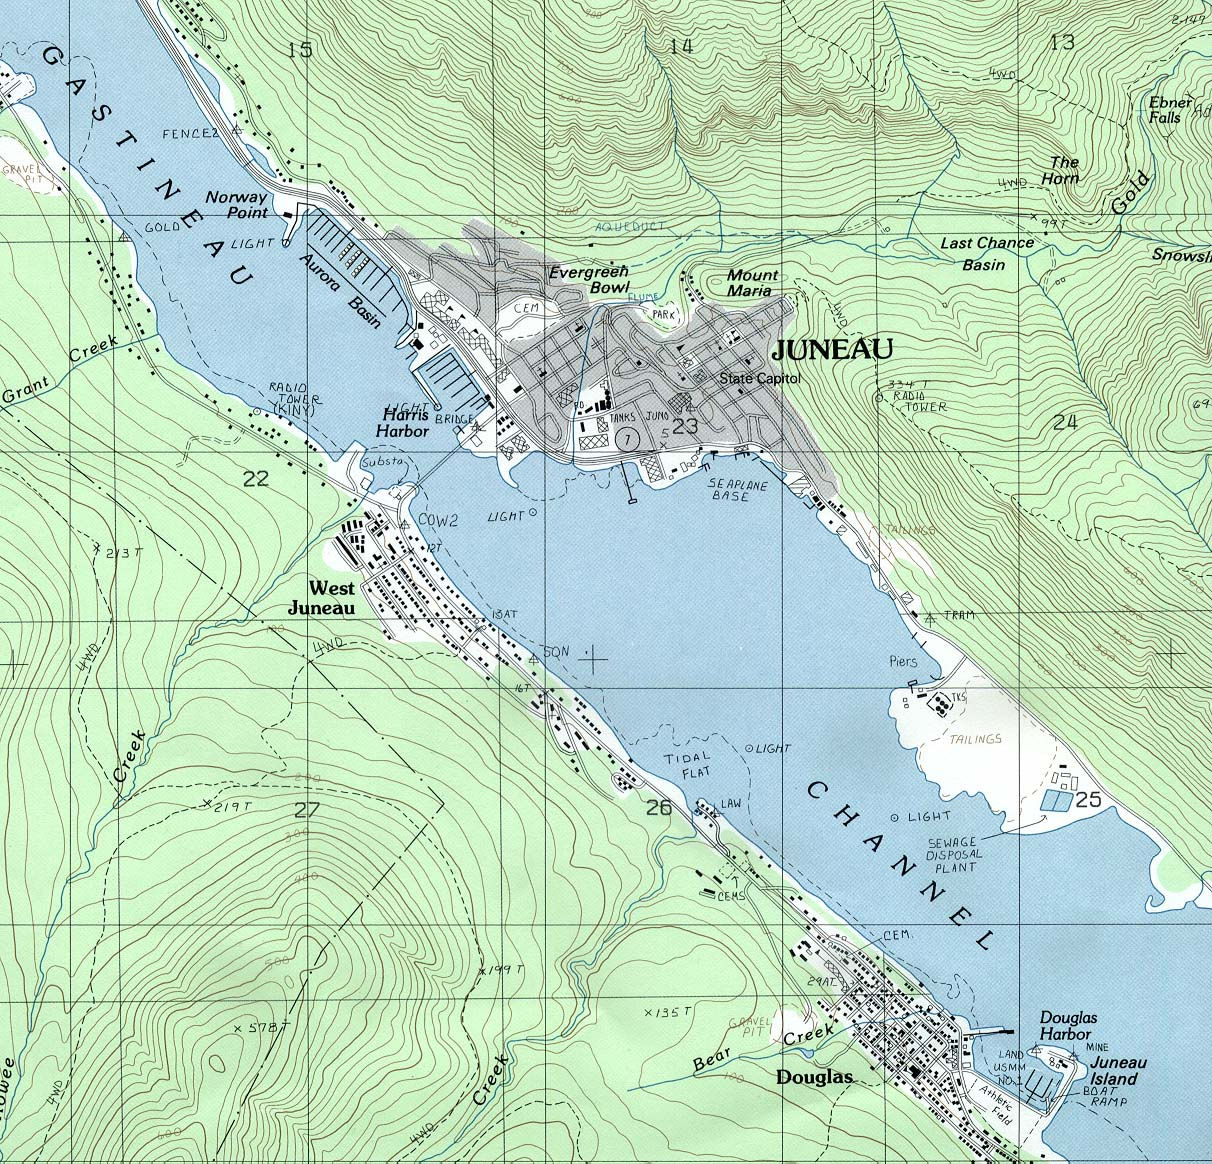 image relating to Printable Maps of Alaska referred to as Alaska Maps - Perry-Castañeda Map Assortment - UT Library On-line